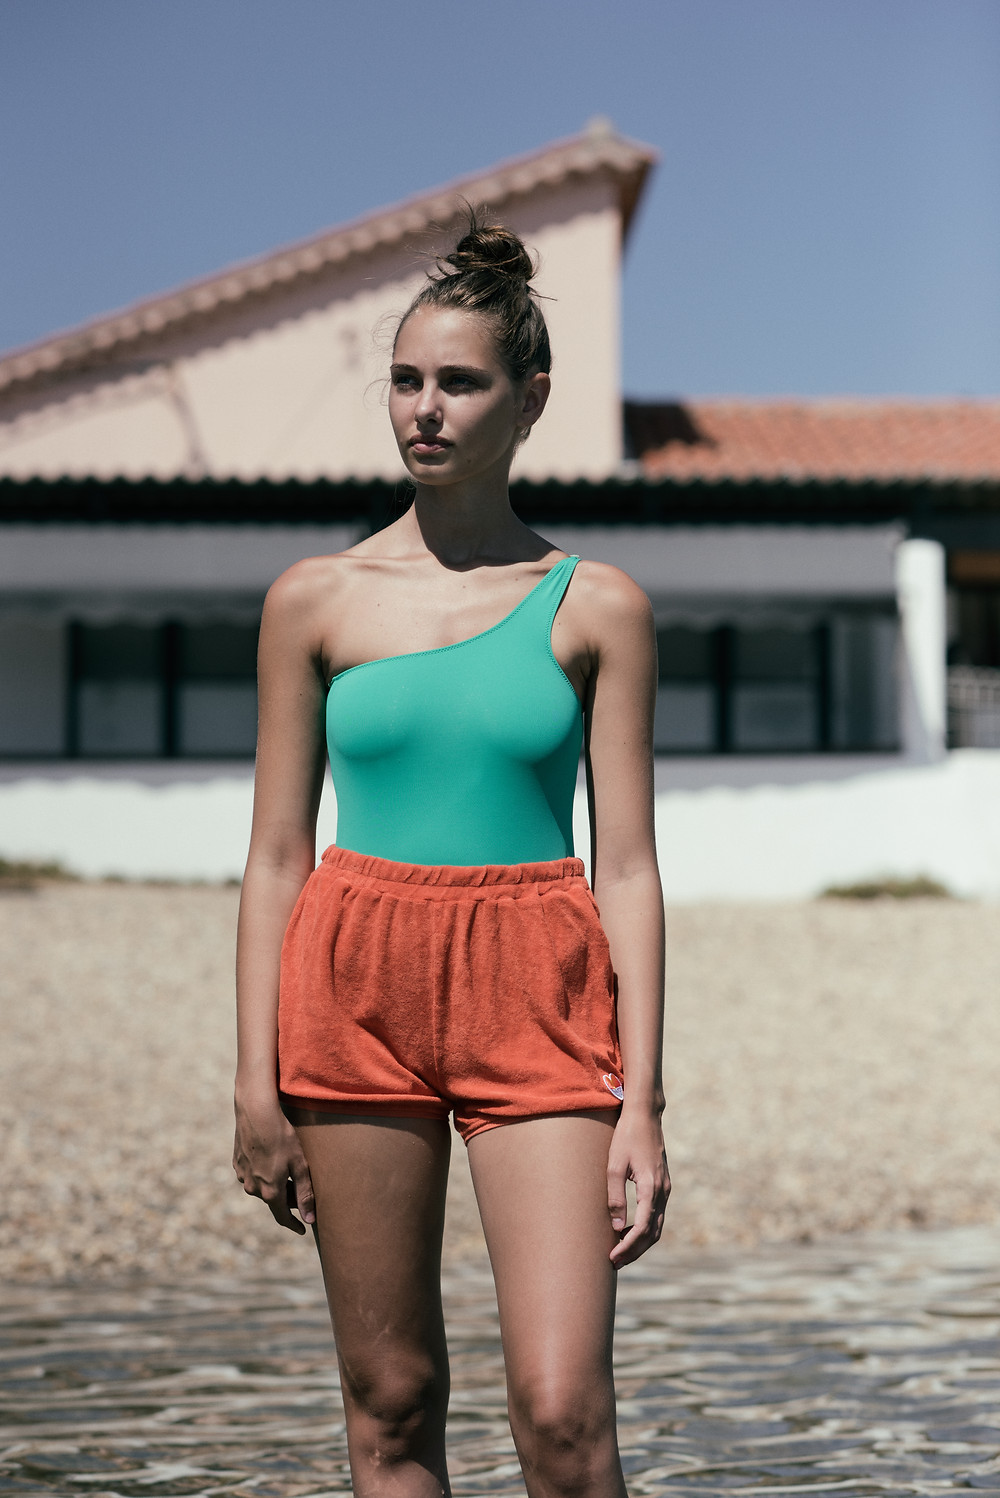 Shorts by Hundred Pieces / swimsuit by Pacific Rainbow